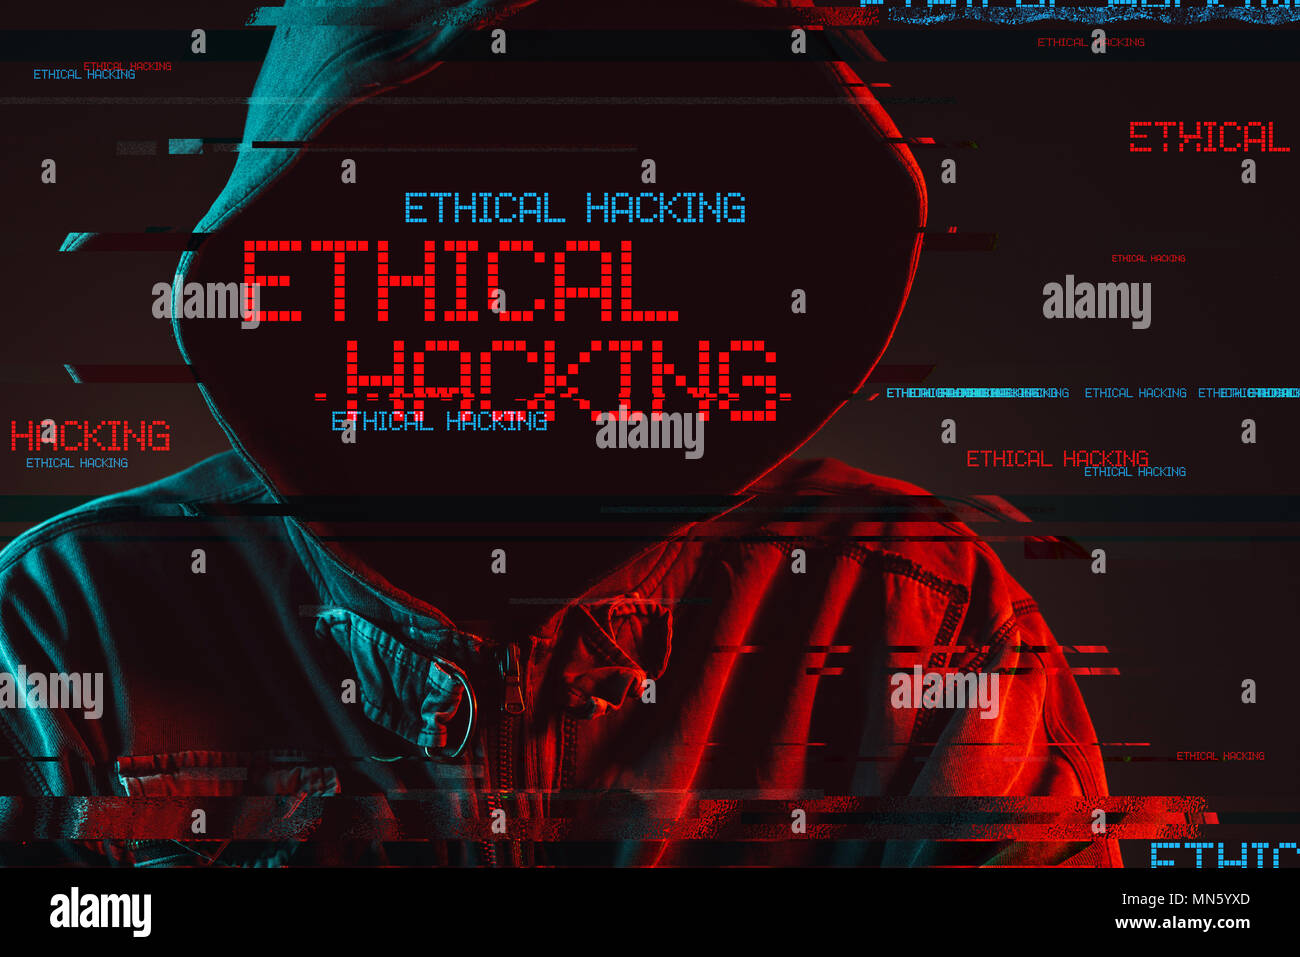 Ethical hacking concept with faceless hooded male person, low key red and blue lit image and digital glitch effect - Stock Image